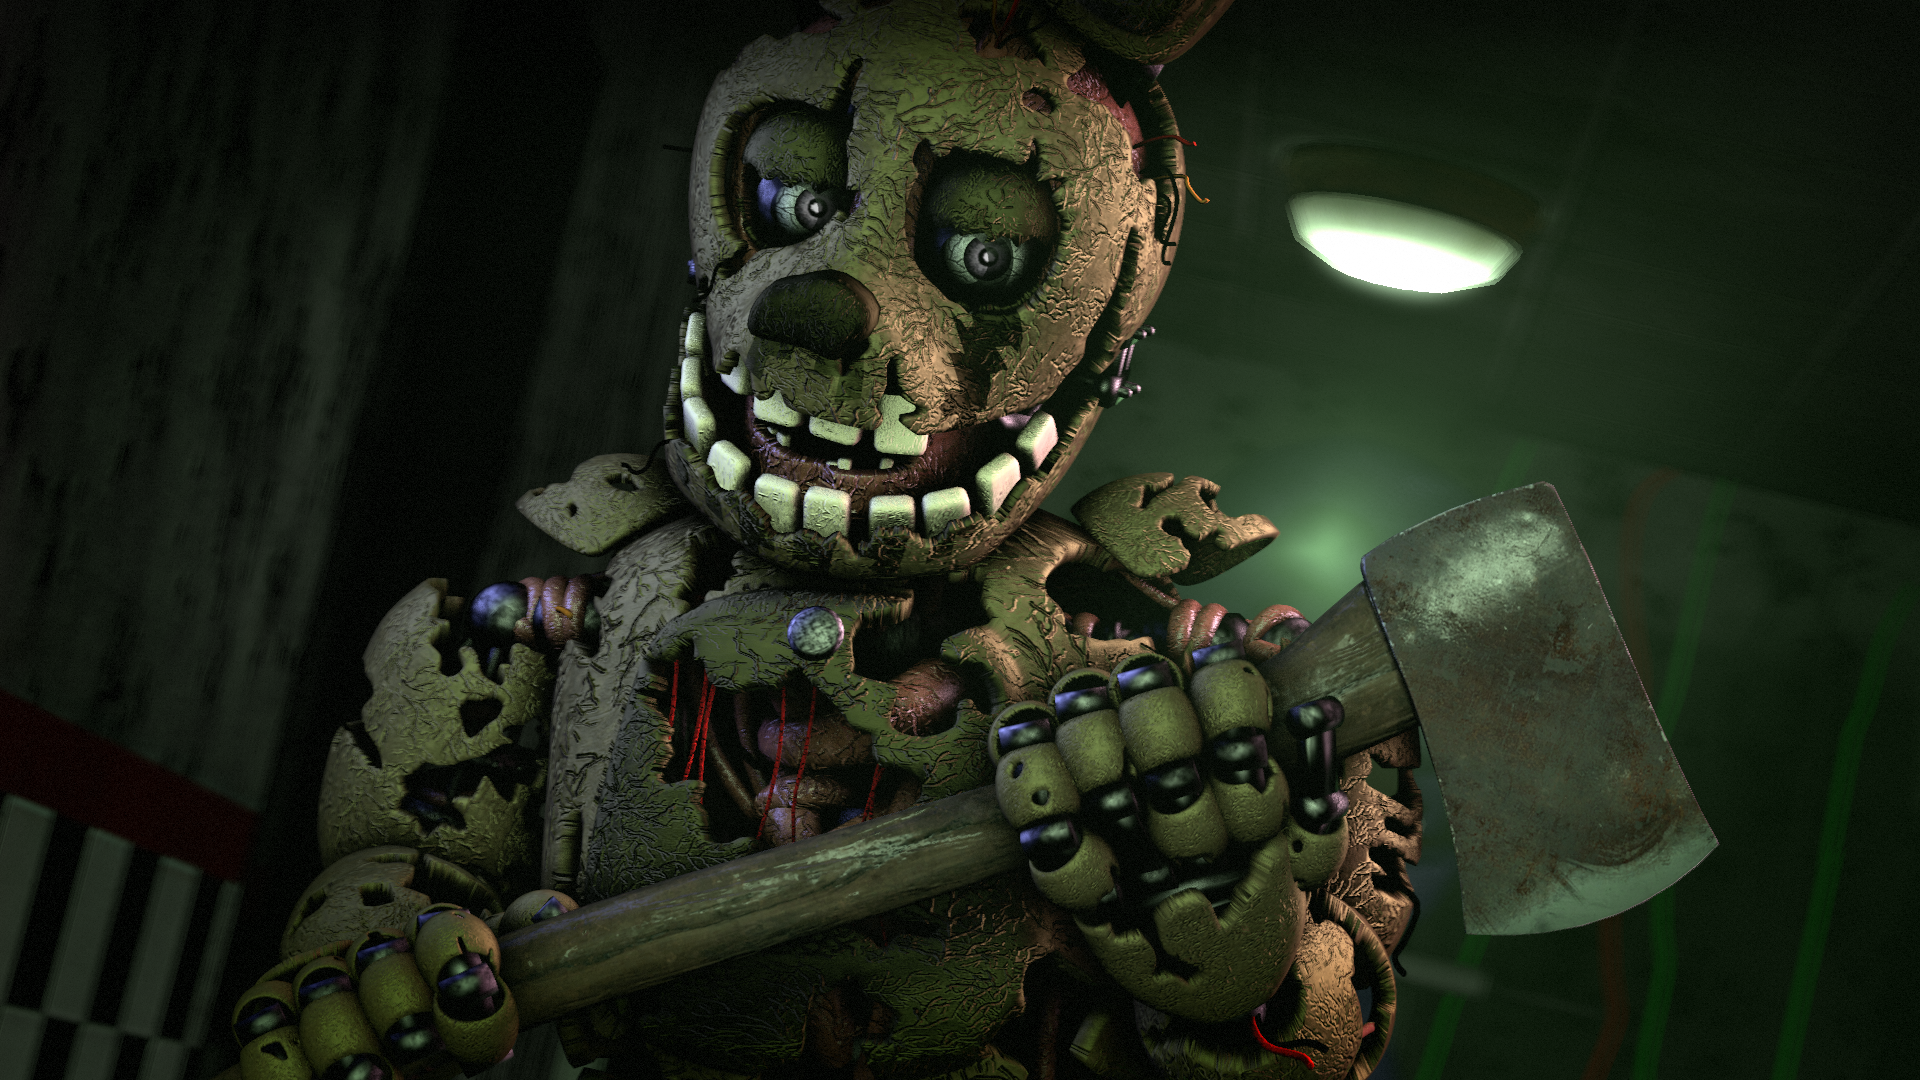 Five Nights at Freddy's 3 HD Wallpaper | Background Image